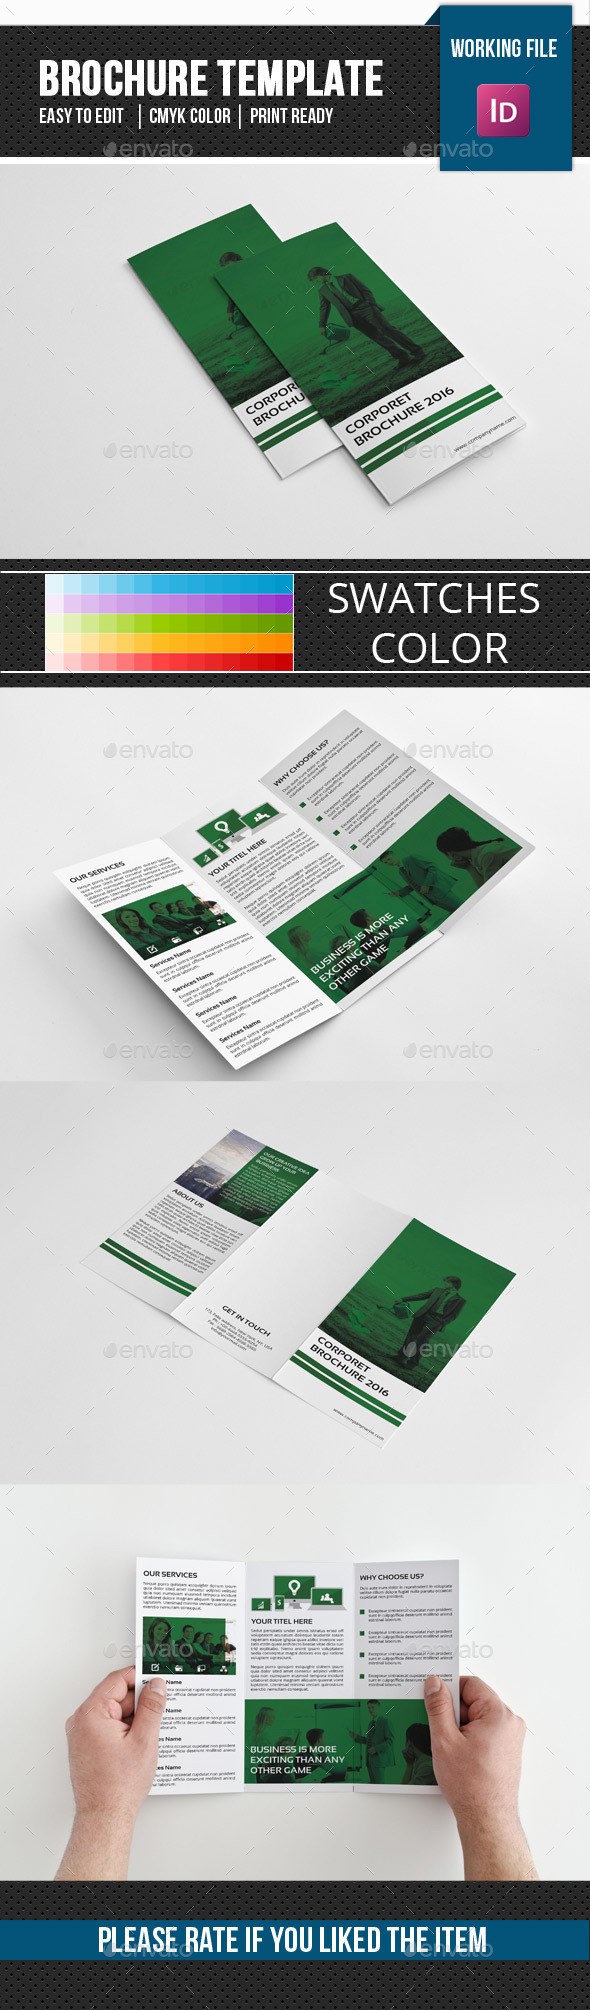 Corporate Trifold Brochure-v272 - Corporate Brochures